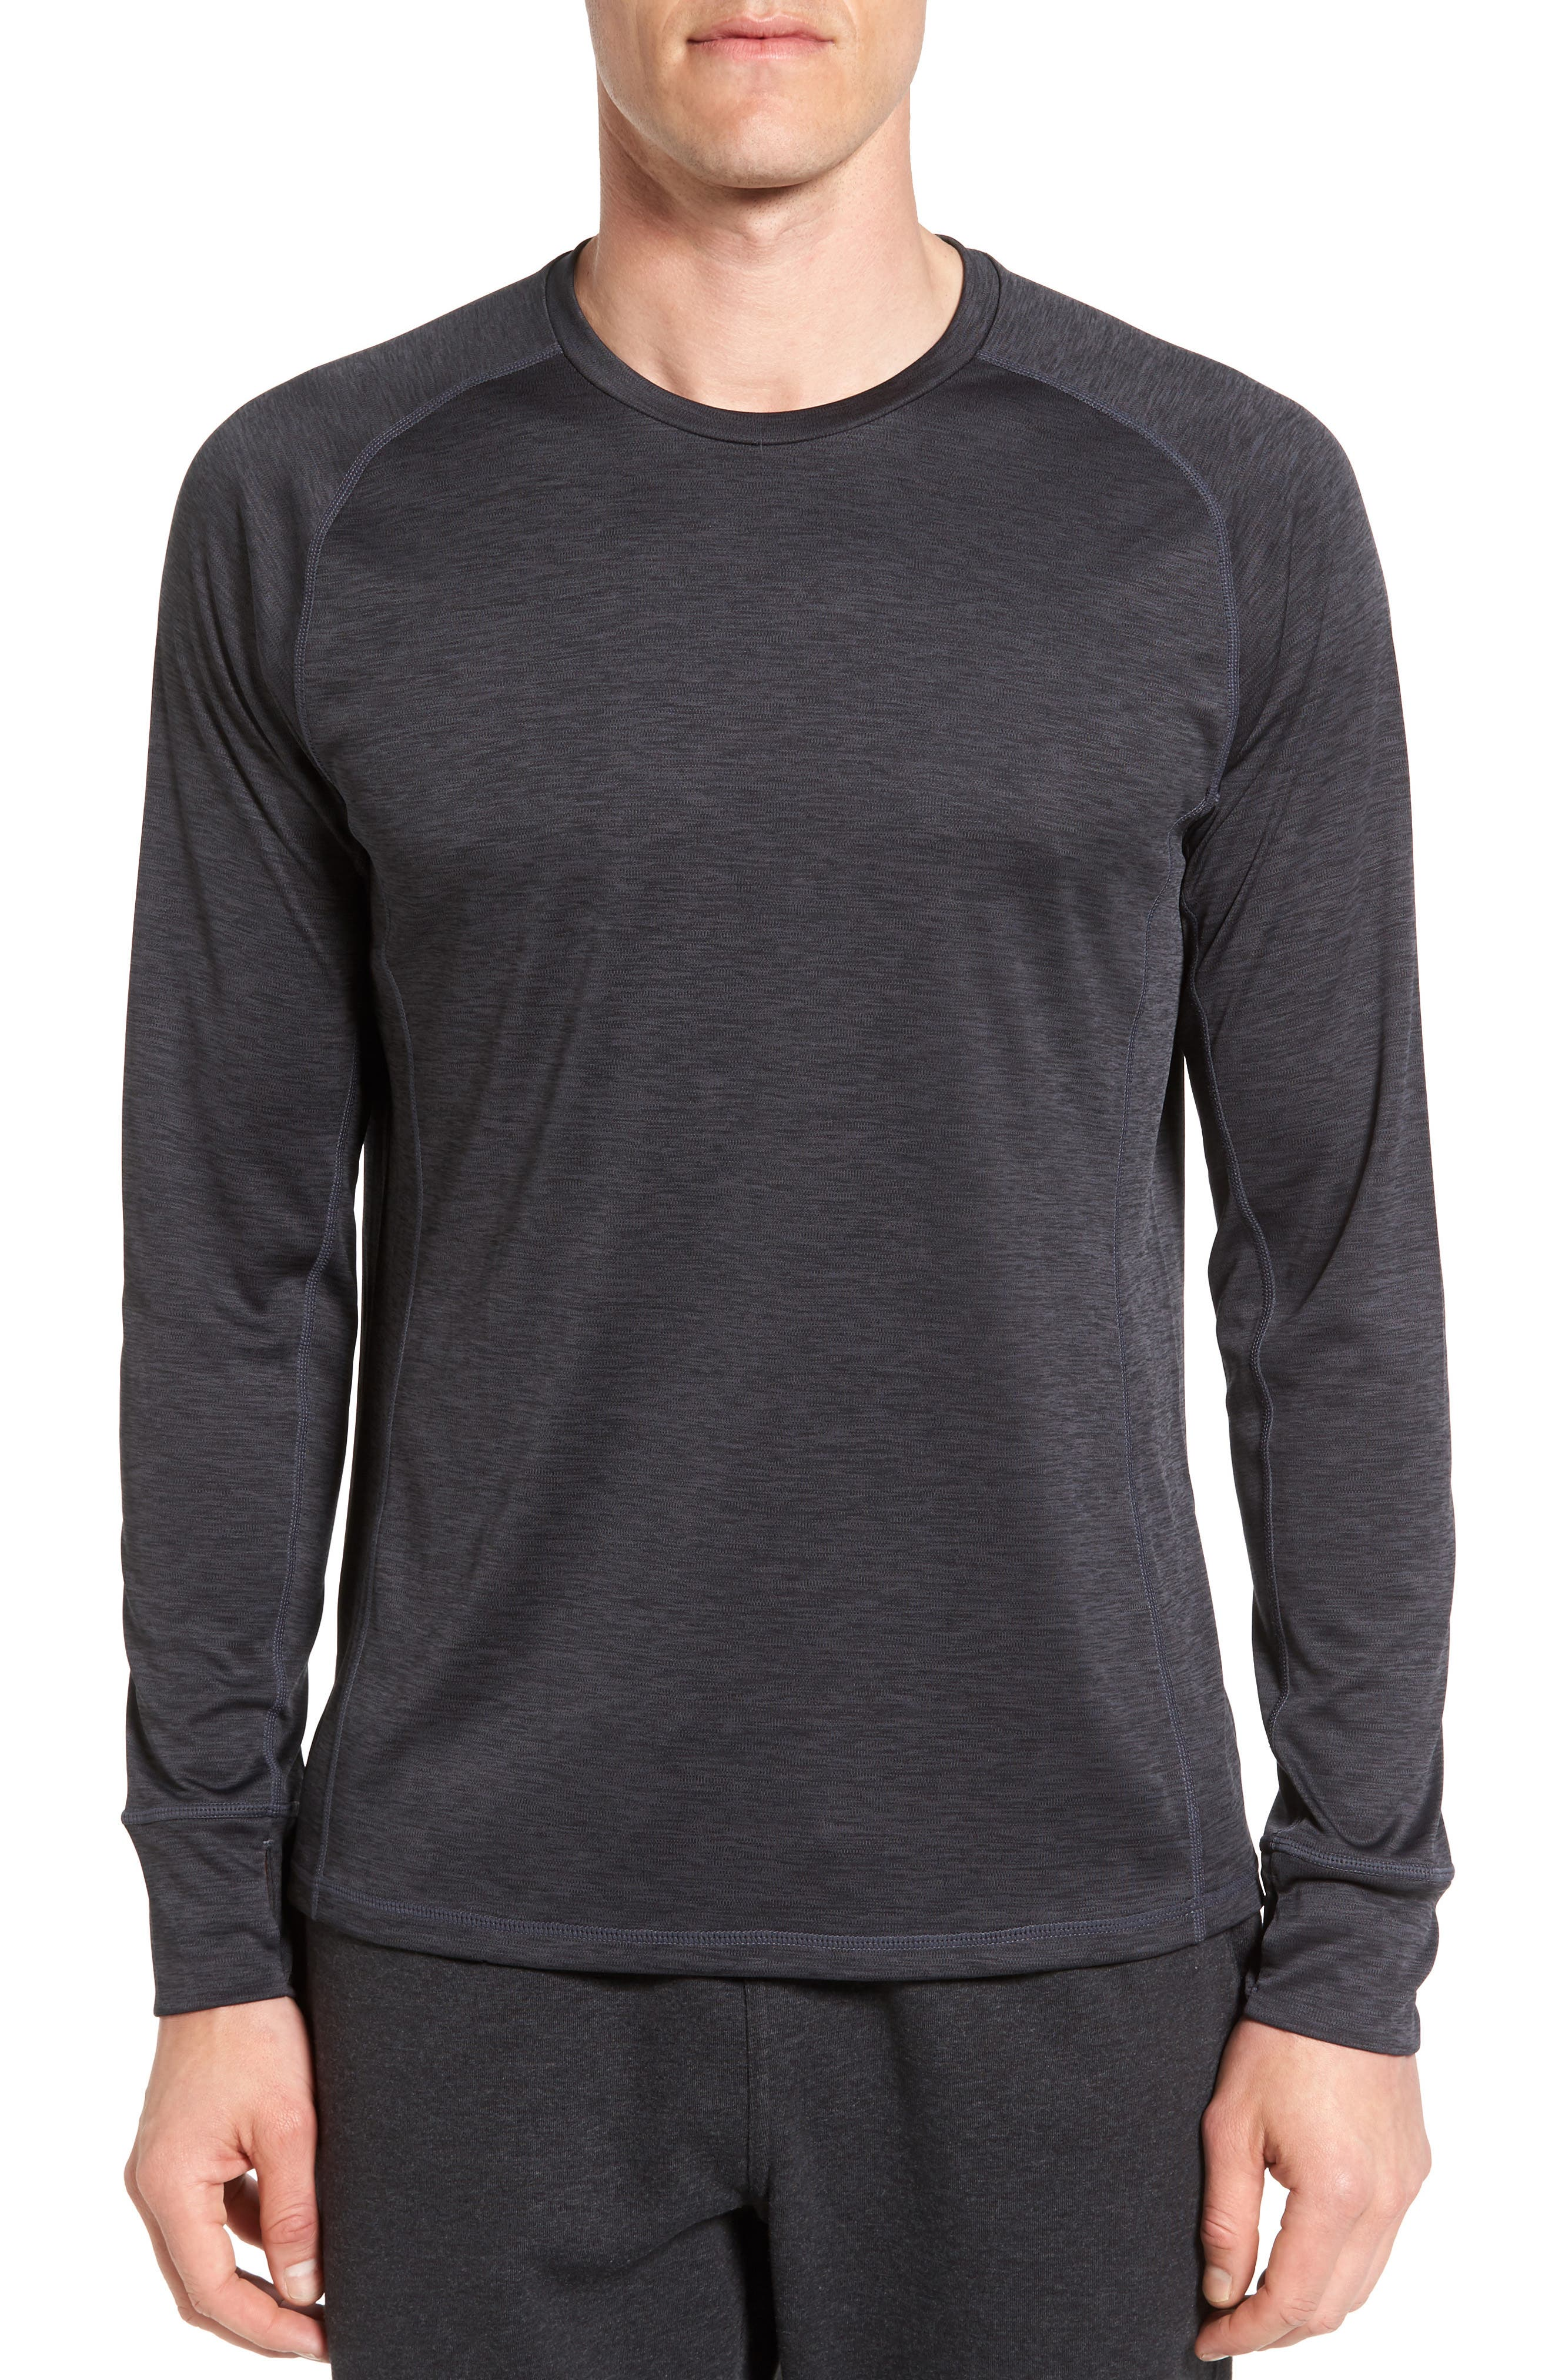 Triplite Long Sleeve T-Shirt,                             Main thumbnail 1, color,                             001